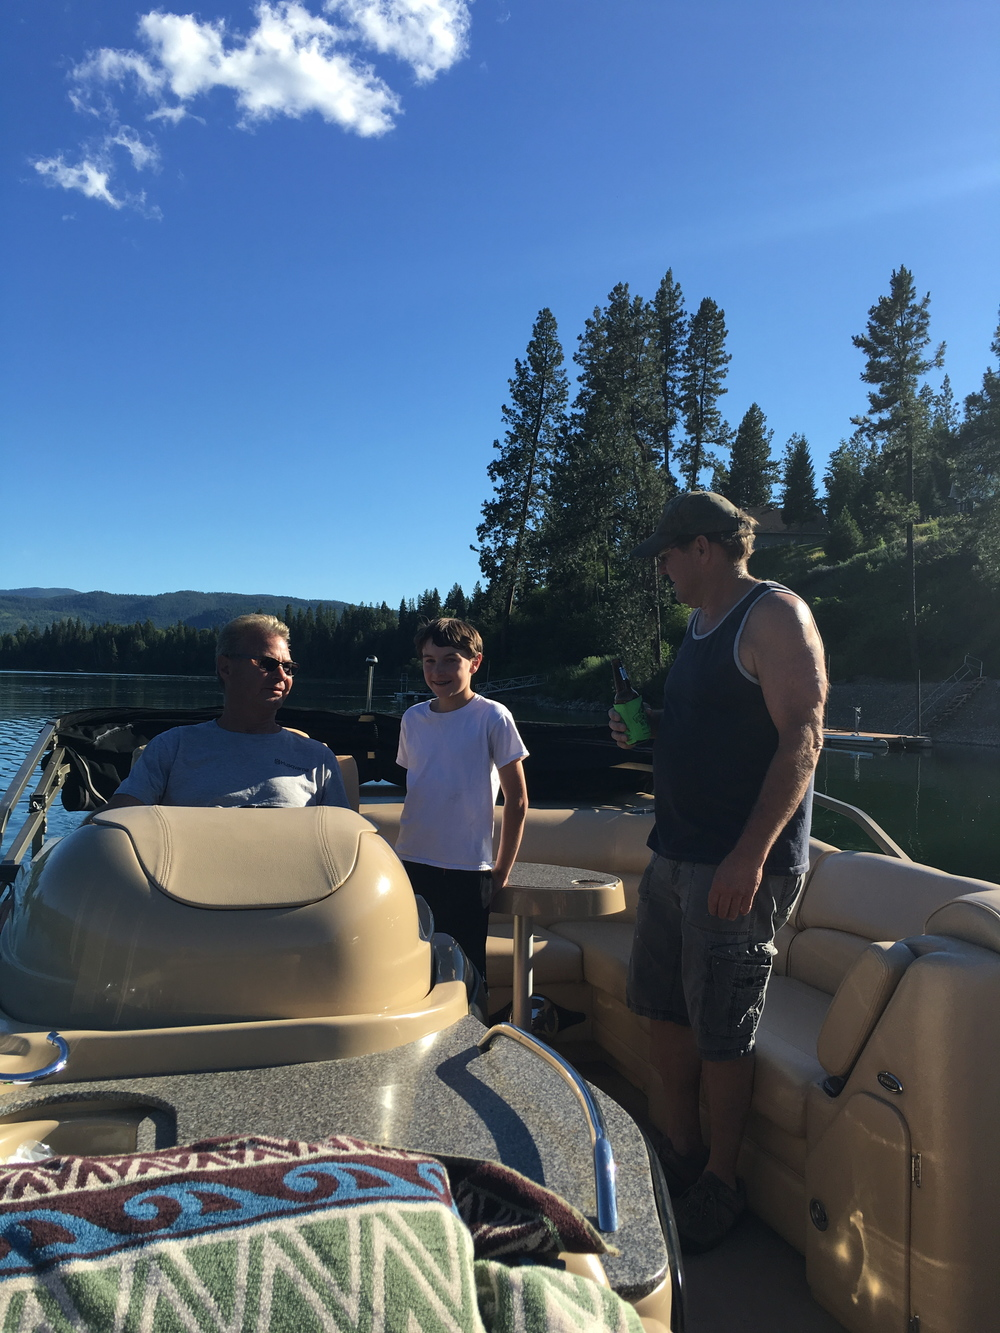 Having fun on the water. Stan, Little Rennie, and Jerry